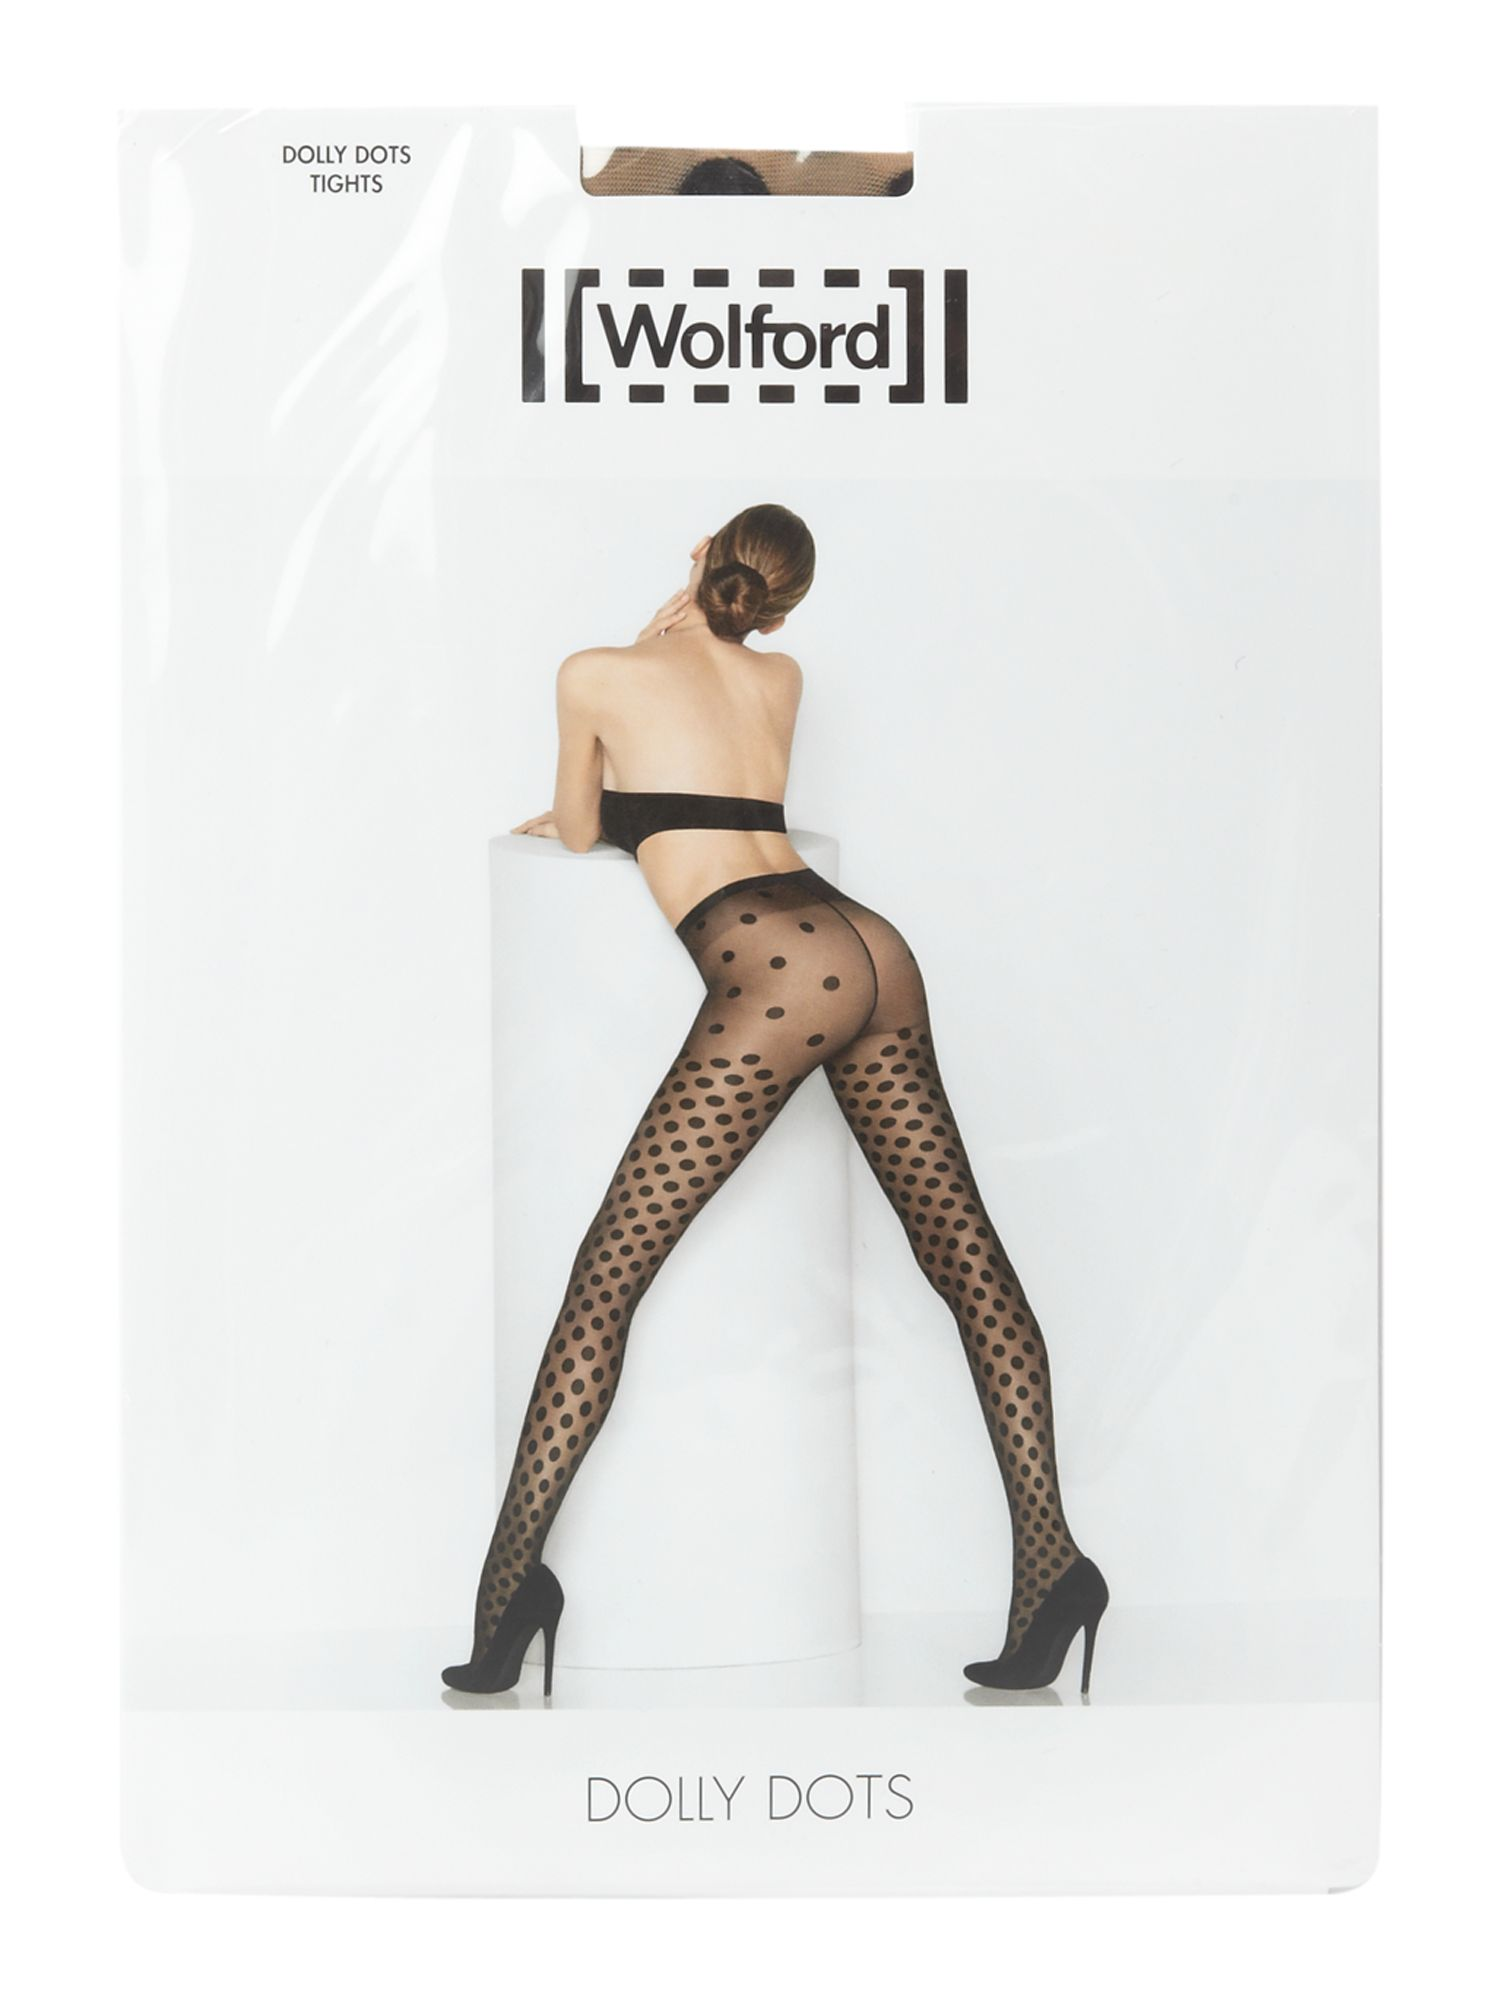 Dolly dots tights